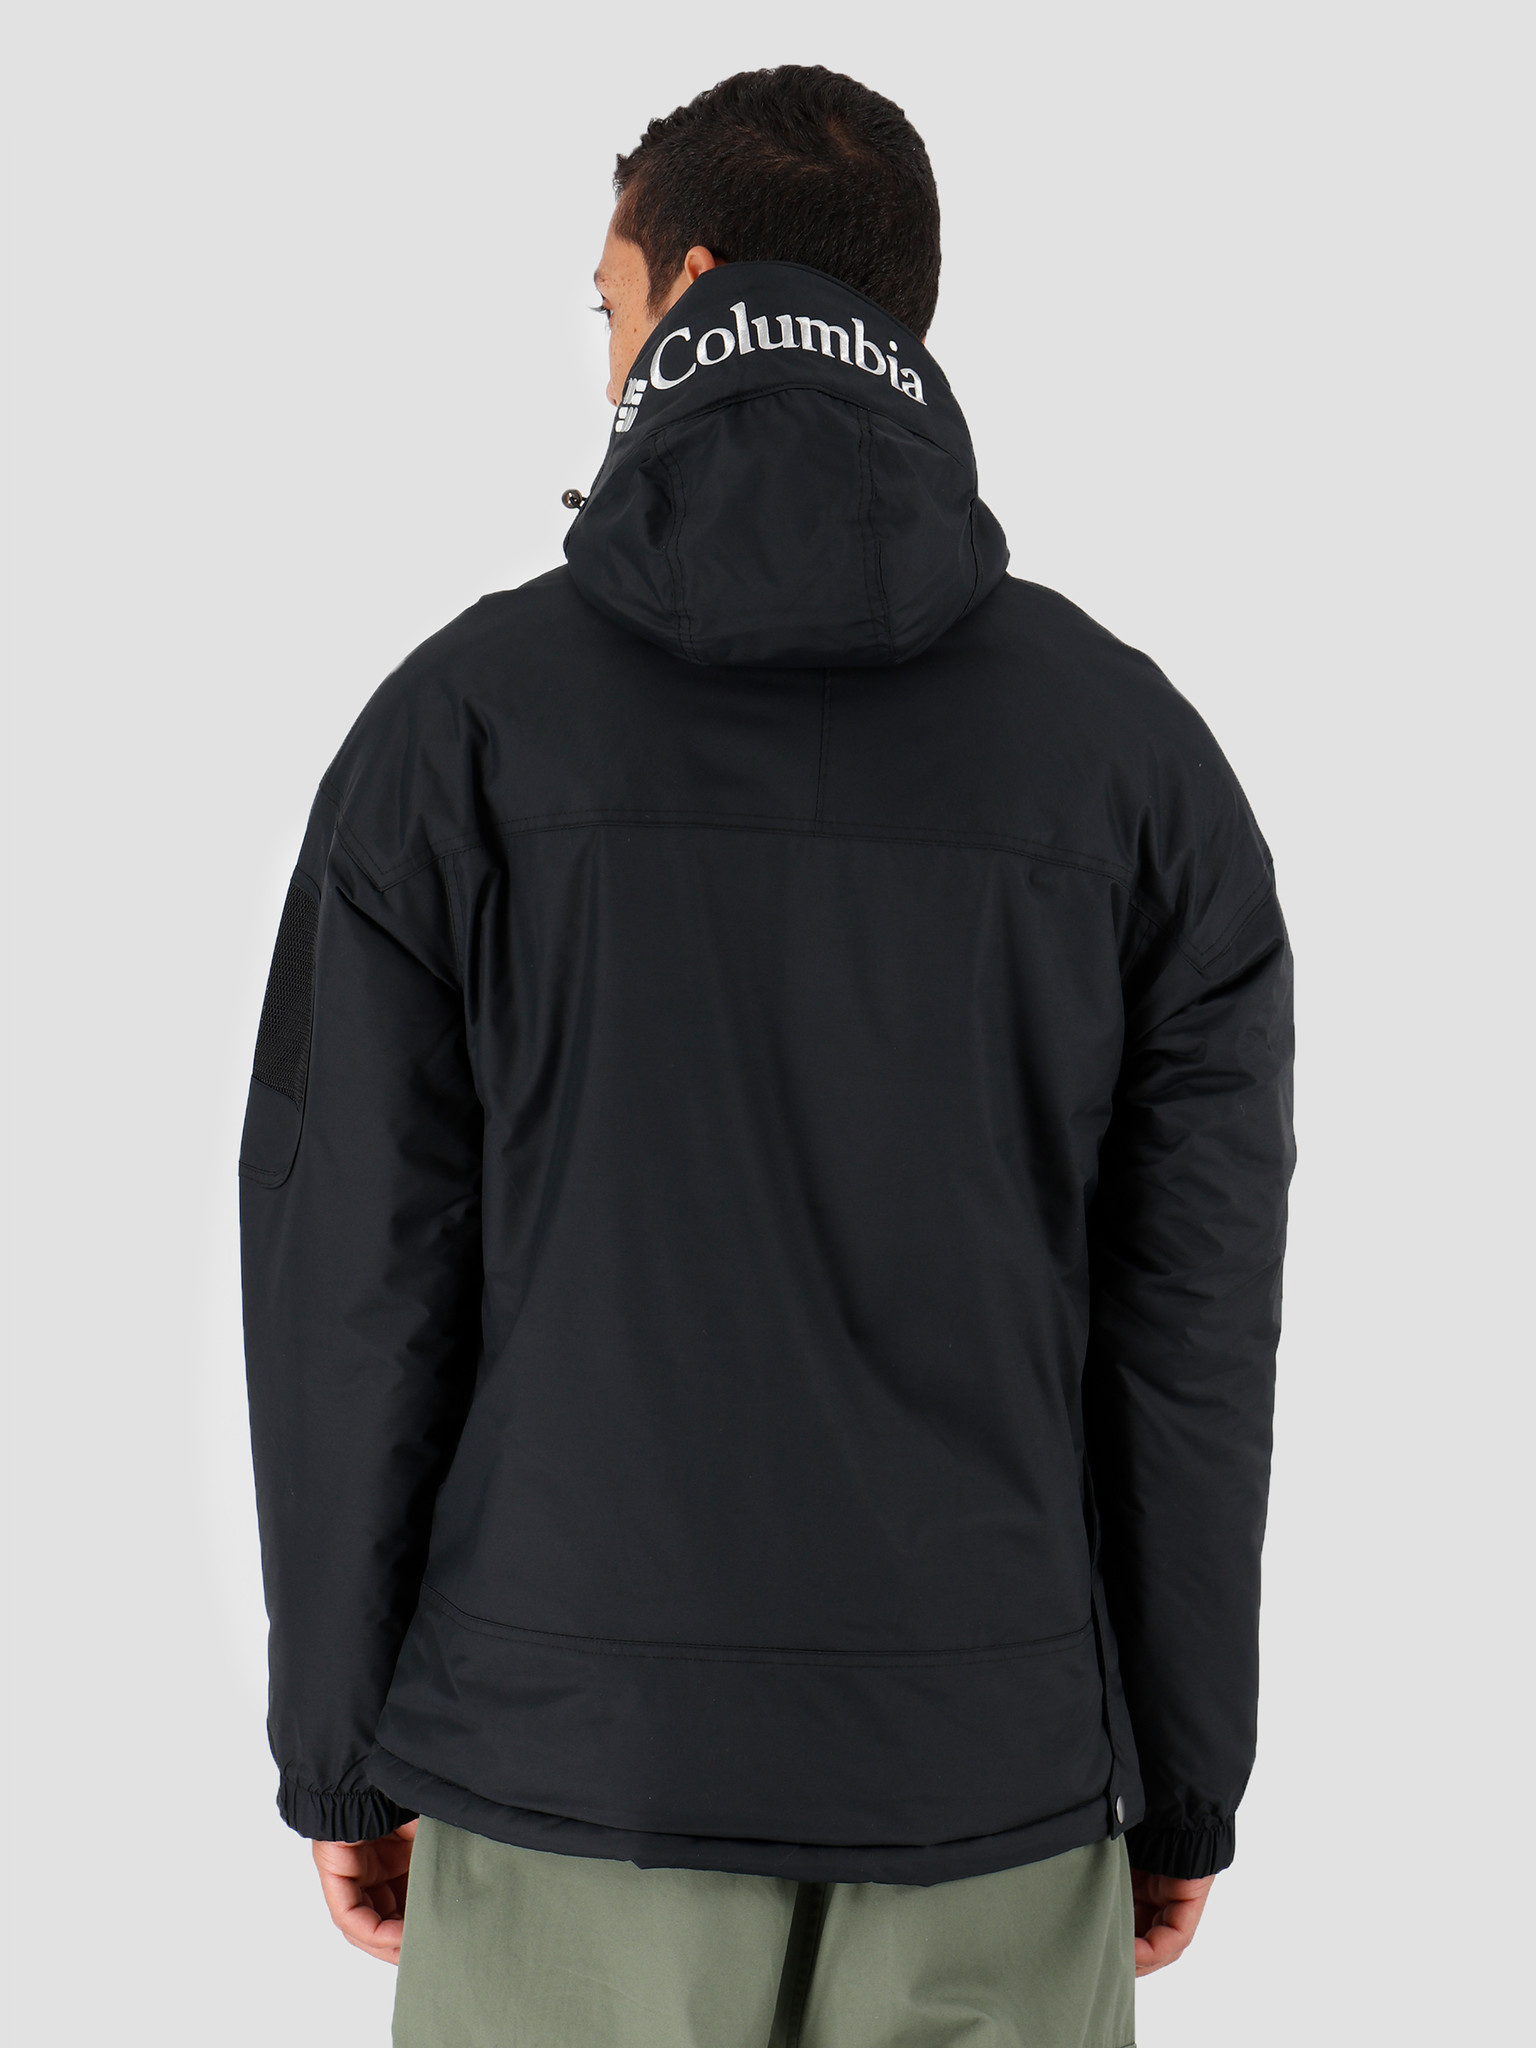 Columbia Columbia Challenger Pullover Black 1698431011